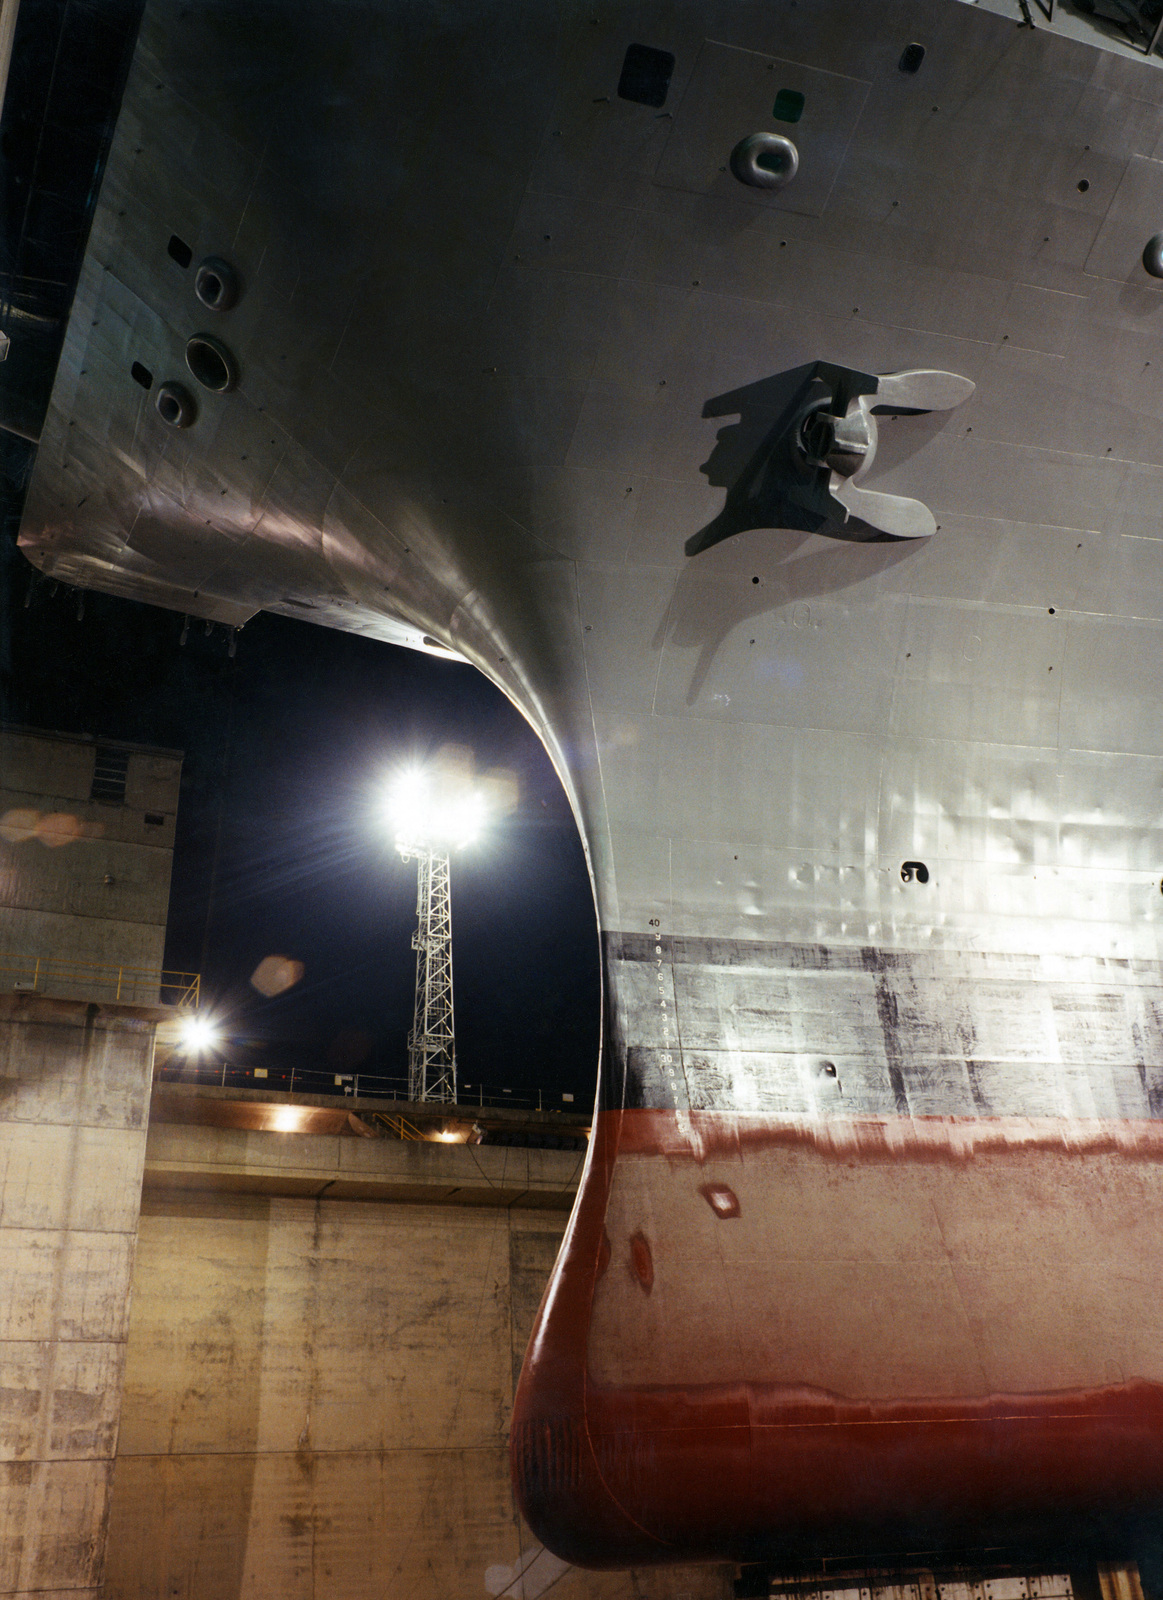 A view of the bulbous bow of the Nimitz Class Aircraft Carrier, USS NIMITZ (CVN 68), while the ship sits in the graving dock area of the dry dock facilities at the Puget Sound Navy Yard in Bremerton, Washington (WA)